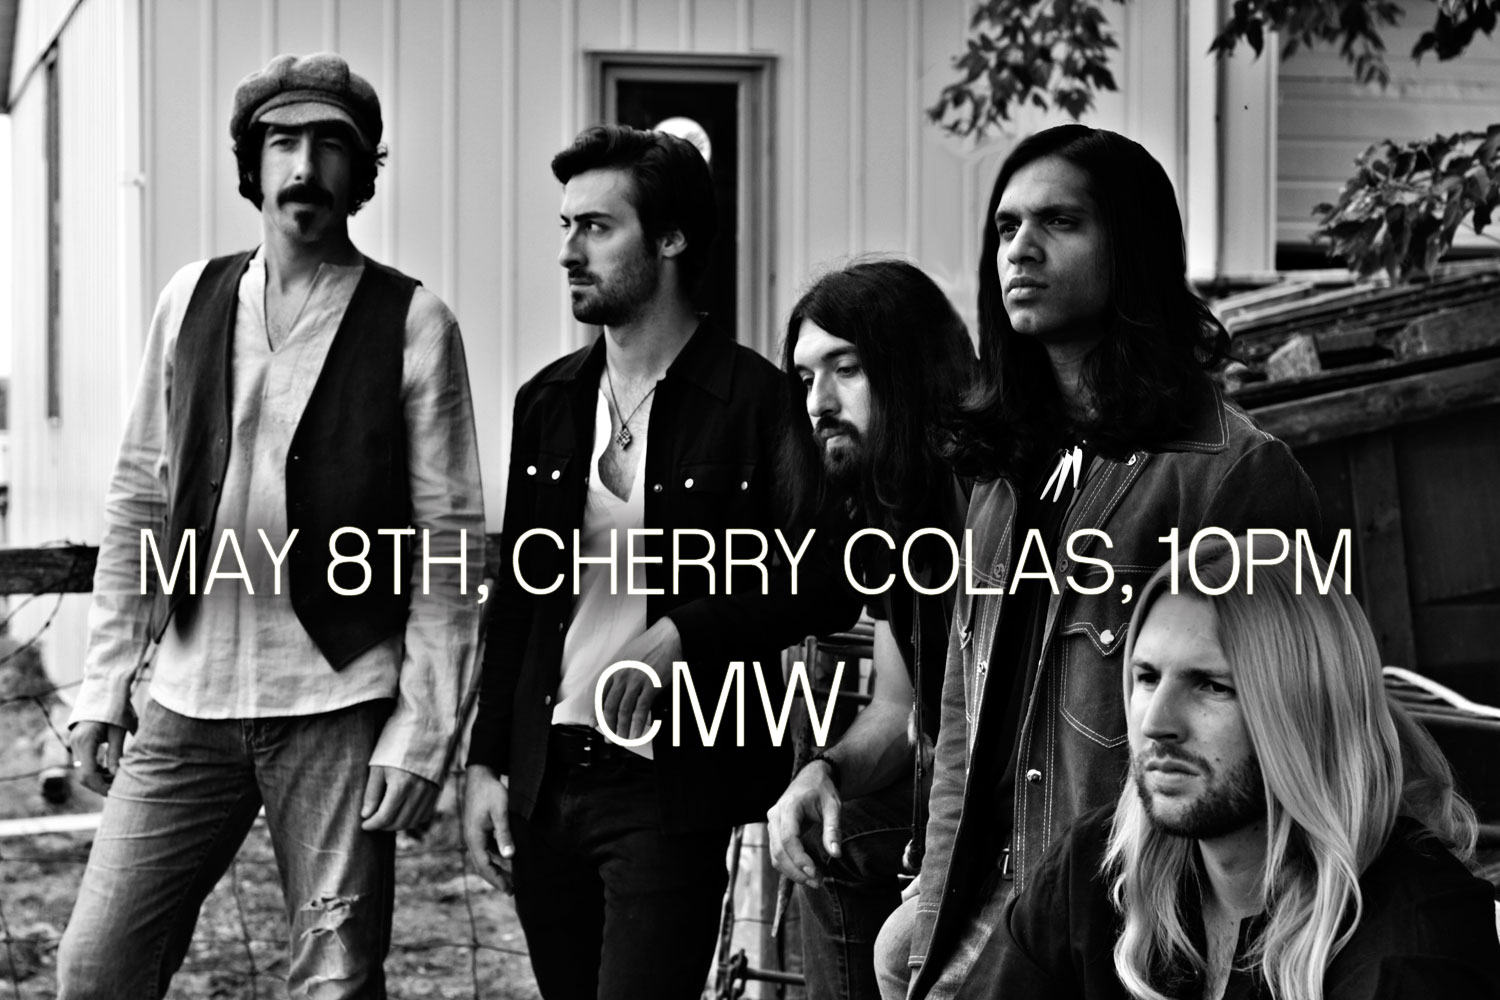 CMW SHOWCASE AT CHERRY COLA'S